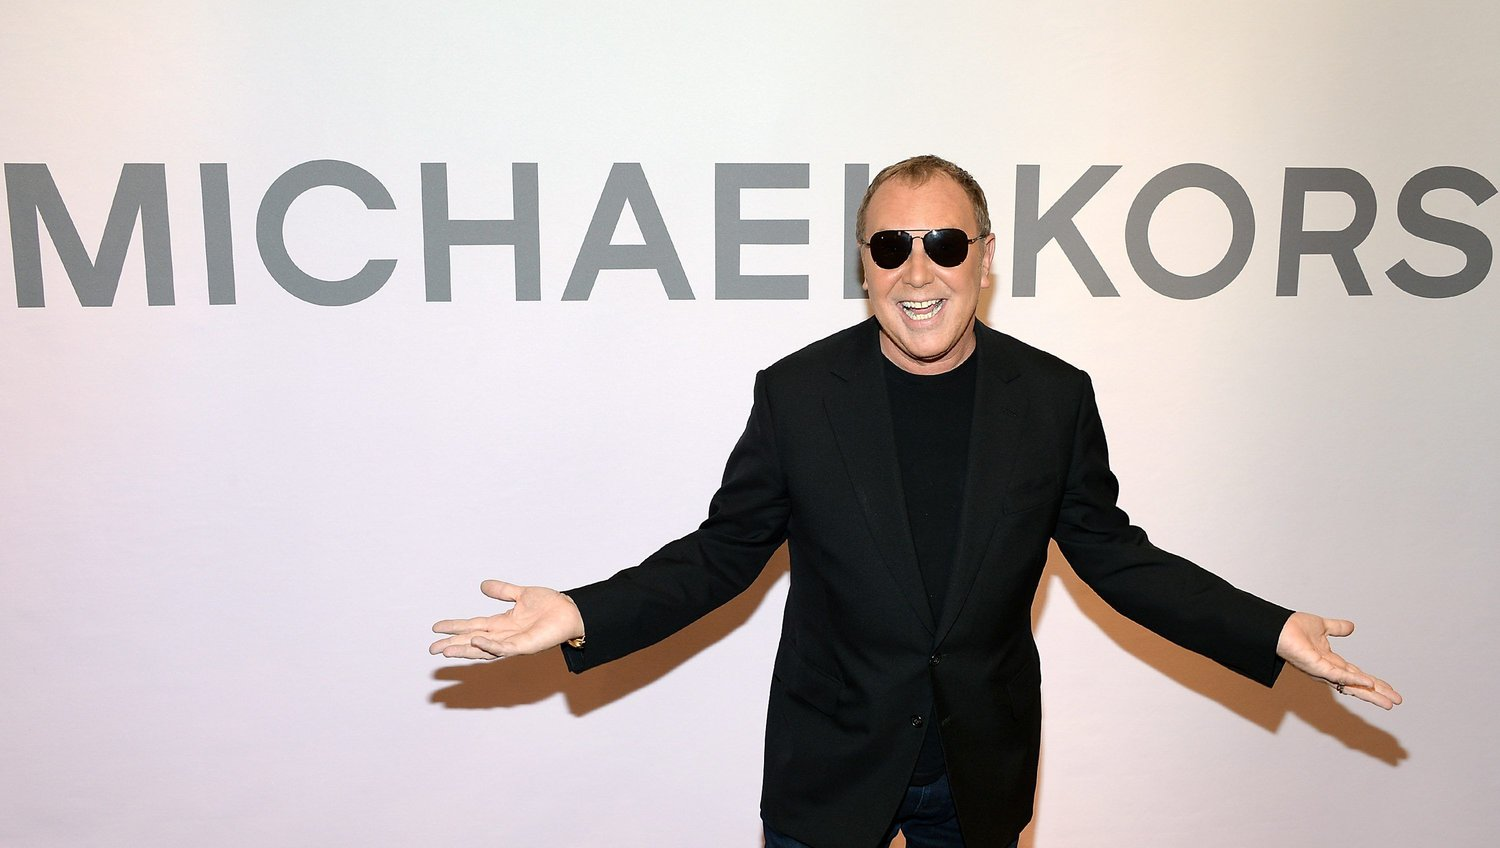 fd04e3e8293 Michael Kors is one of the most respected fashion designers in the world.  His hand bags are some of the most coveted bags on the market that women  from all ...